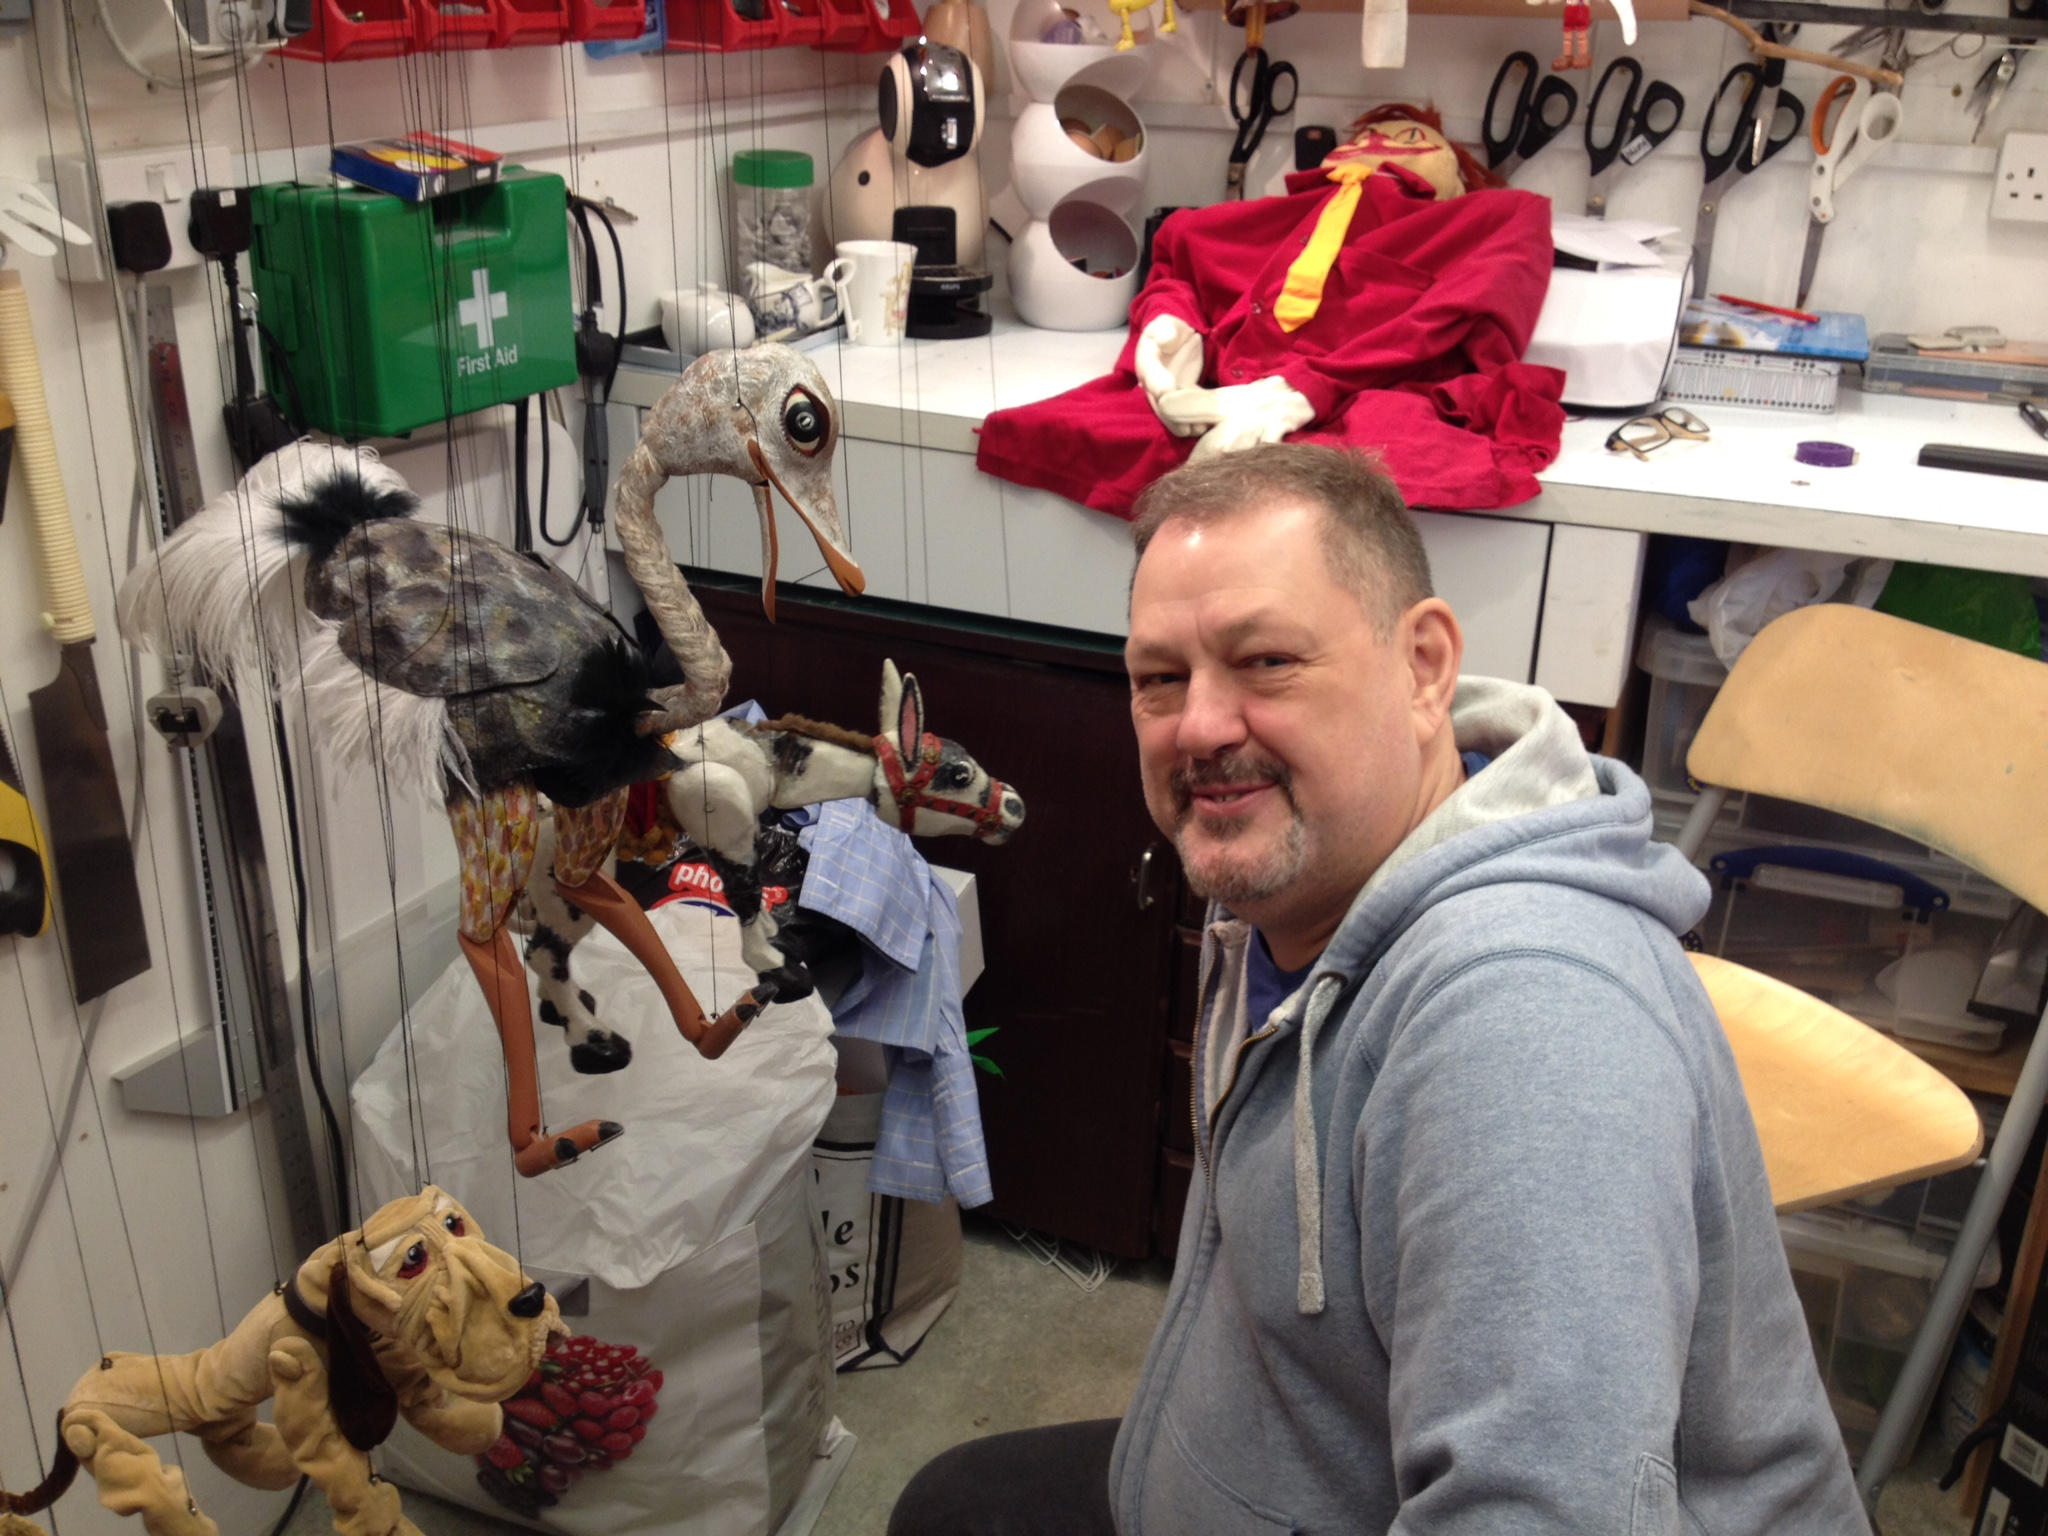 Keith Frederick working on the new and old Muffin puppets